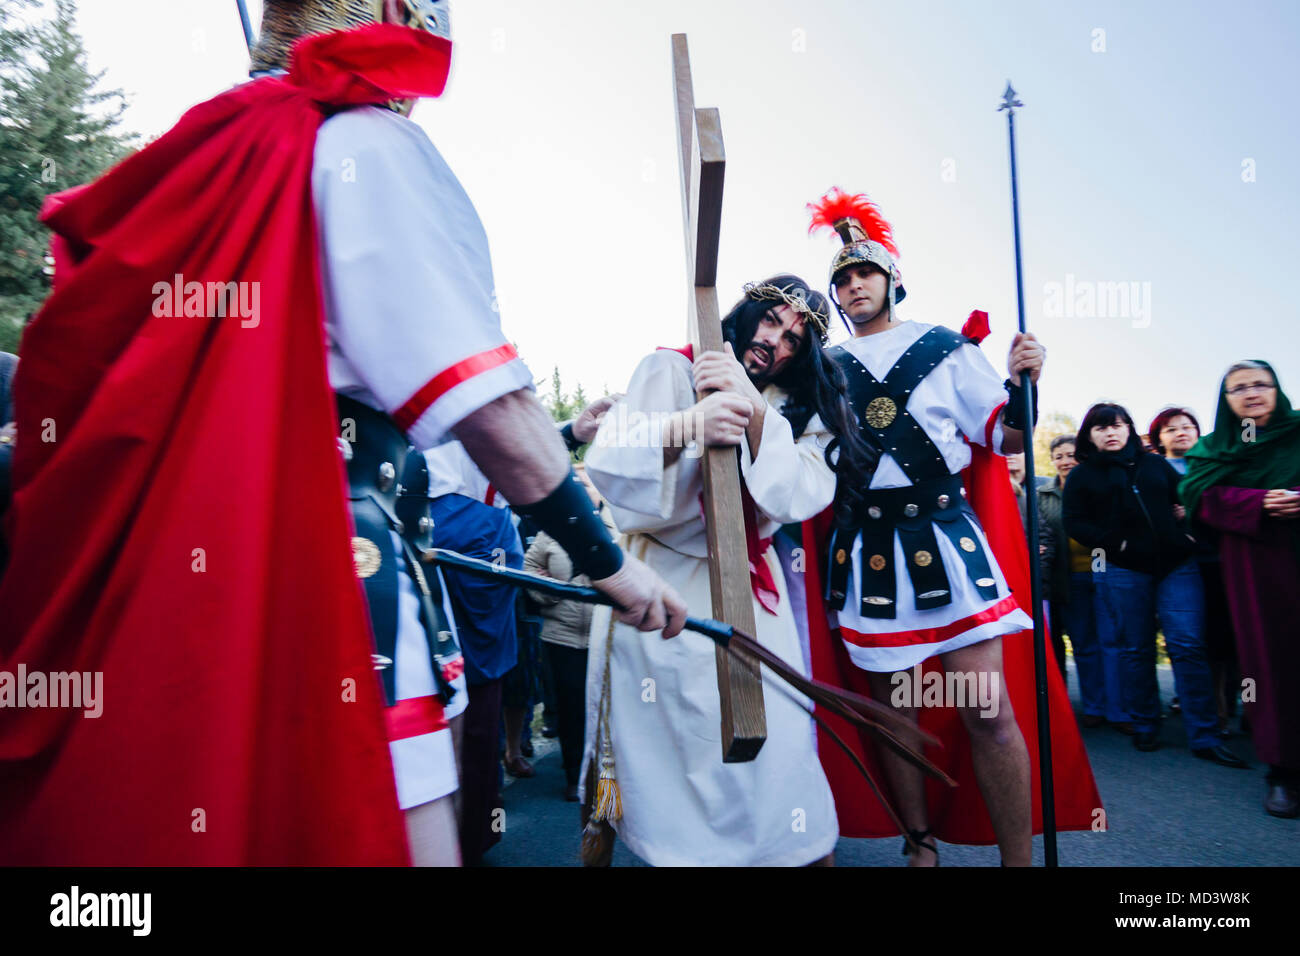 Living Via Crucis, re-enacting the Stations of the Cross during Holy Week-Semana Santa in Laujar de Andarax, Almeria province, Andalusia, Spain Stock Photo